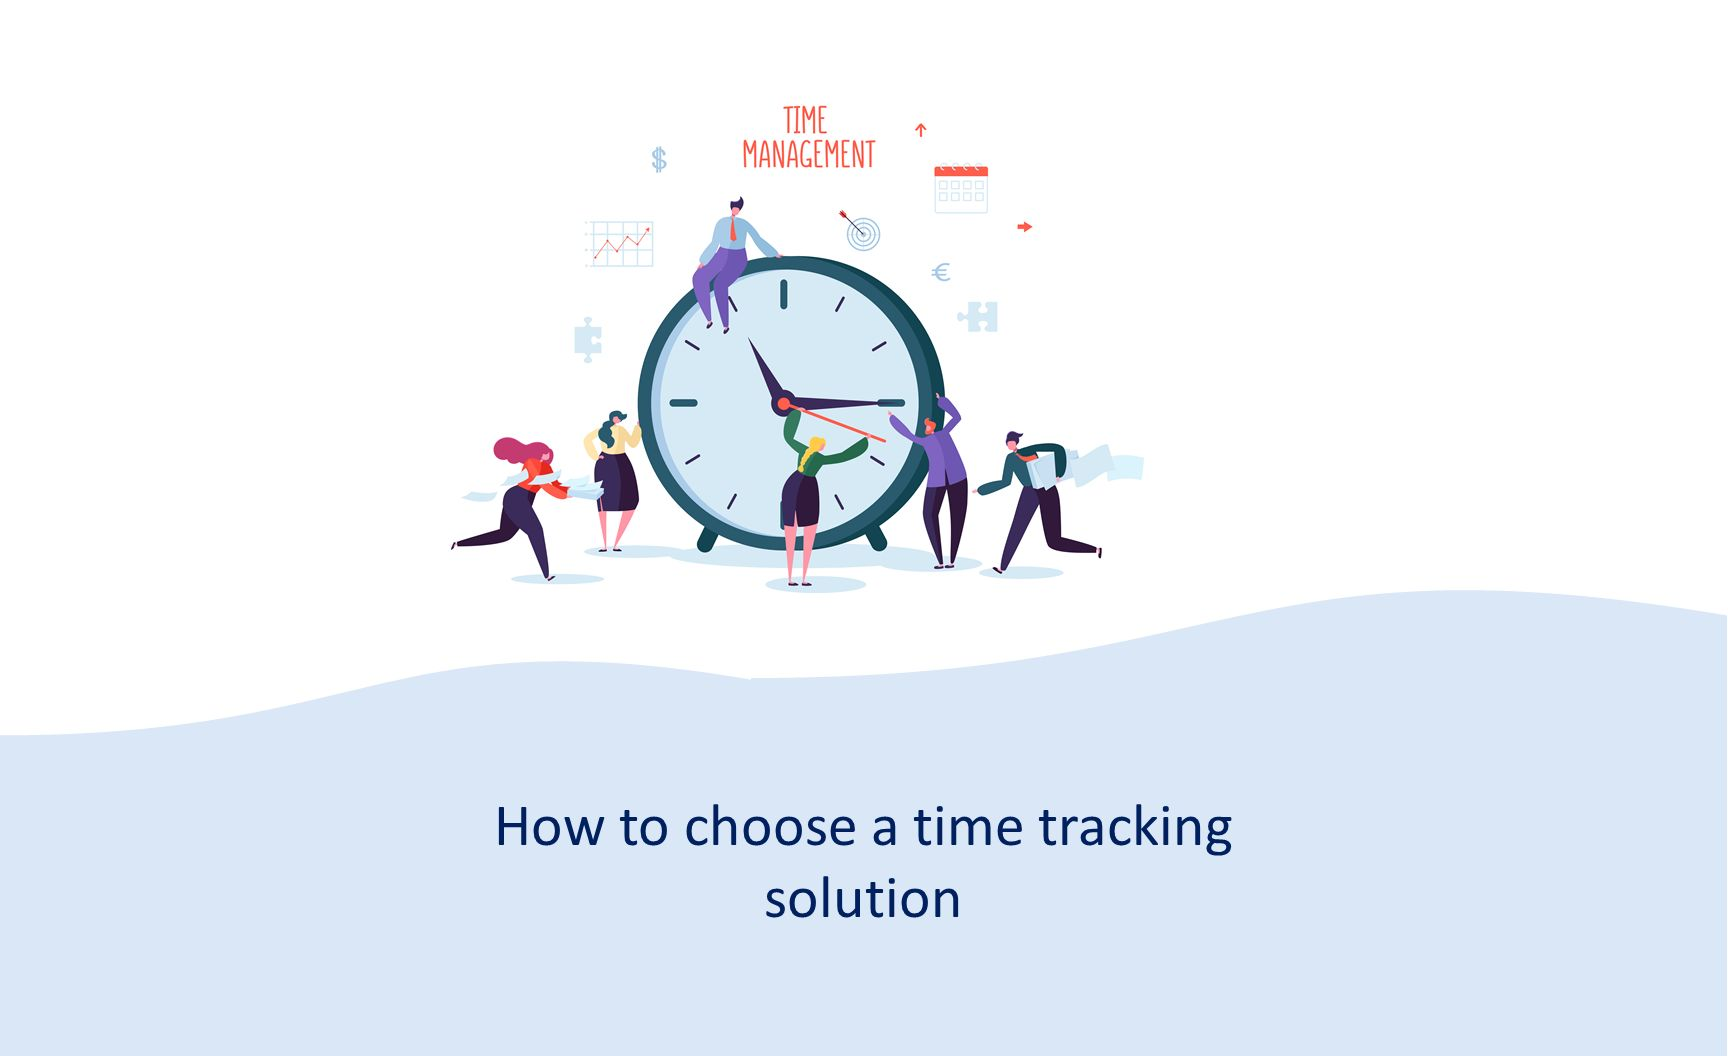 /how-to-choose-a-time-tracking-solution-for-your-business-a-step-by-step-guide-5a29340t feature image